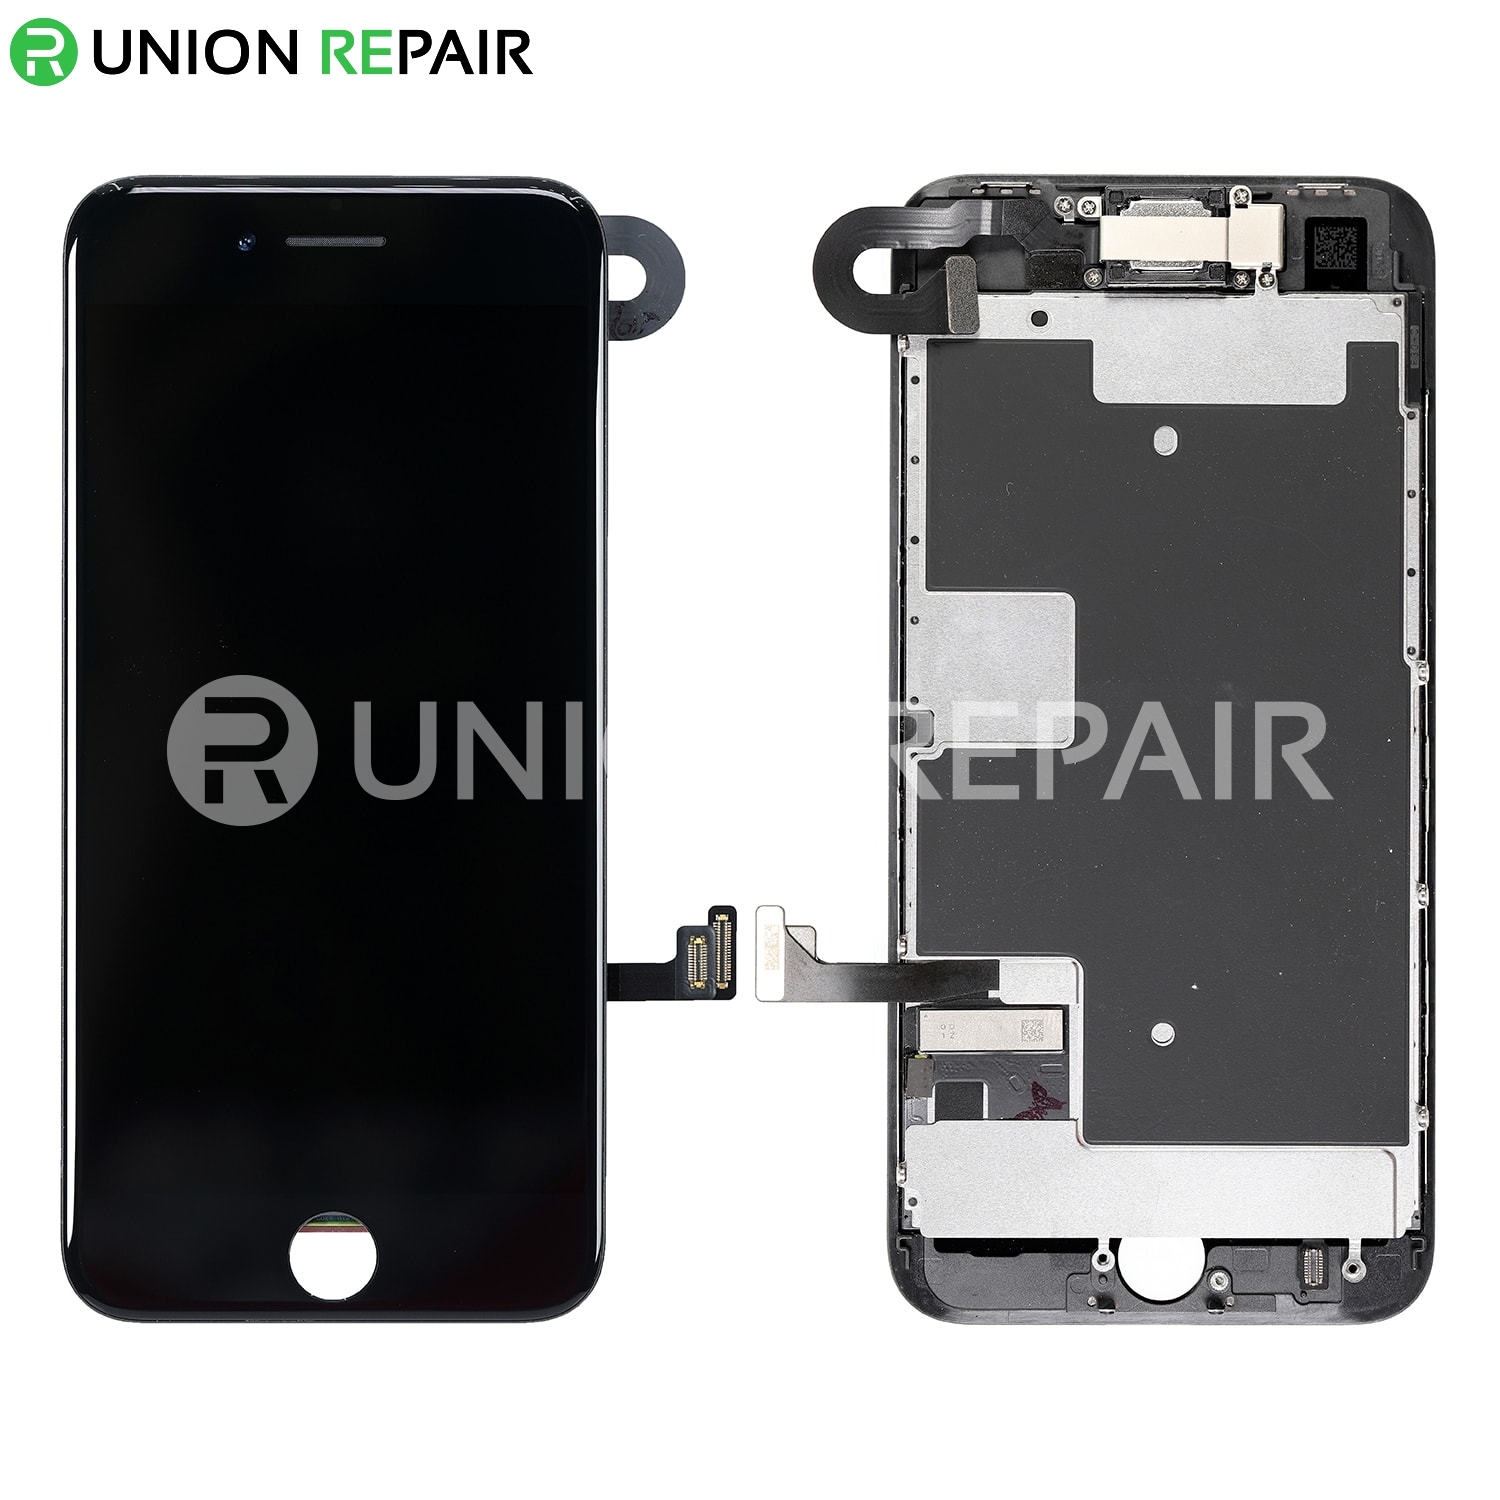 online store 0eeee 4c5e5 Replacement for iPhone 8 LCD Screen Full Assembly without Home Button -  Black